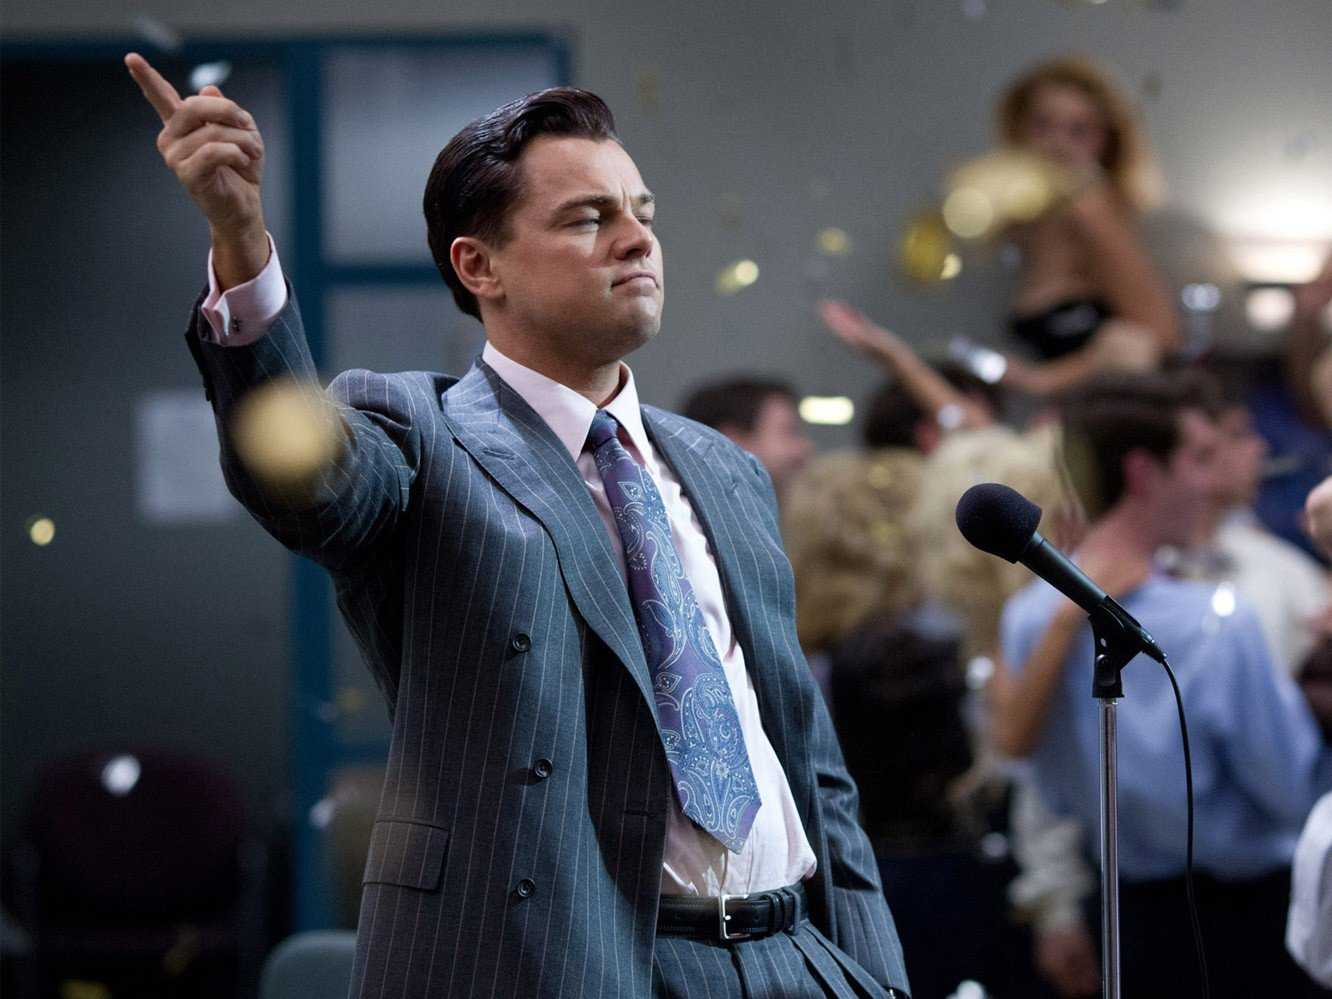 Leonardio DiCaprio as Jordan Belfort in The Wolf of Wall Street.